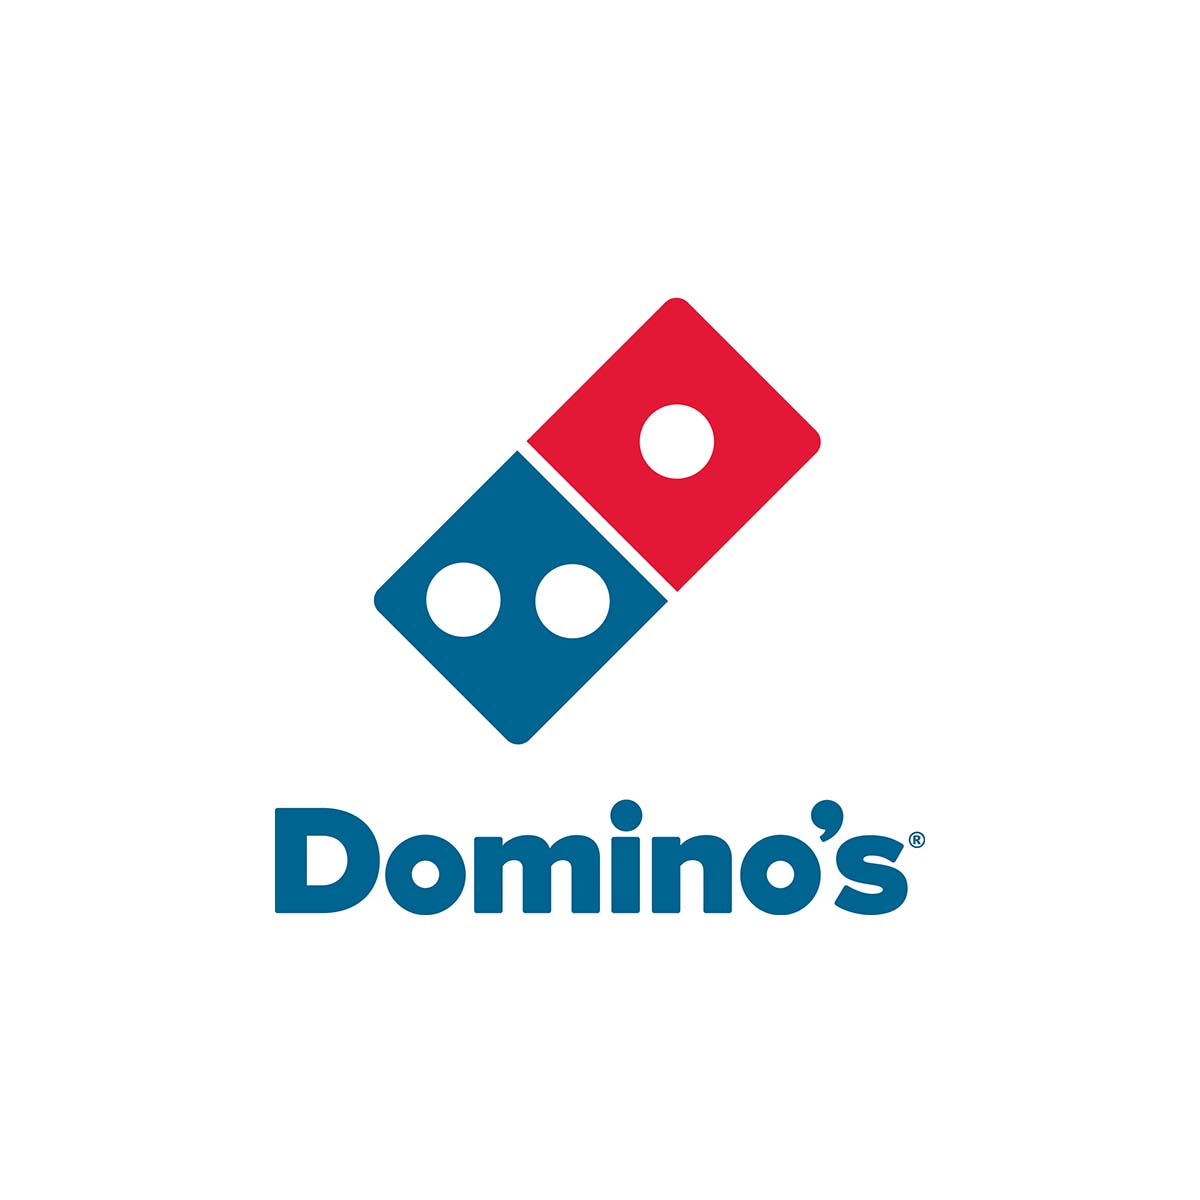 Dominos Domino S Home Page Domino S Pizza Order Pizza Online For